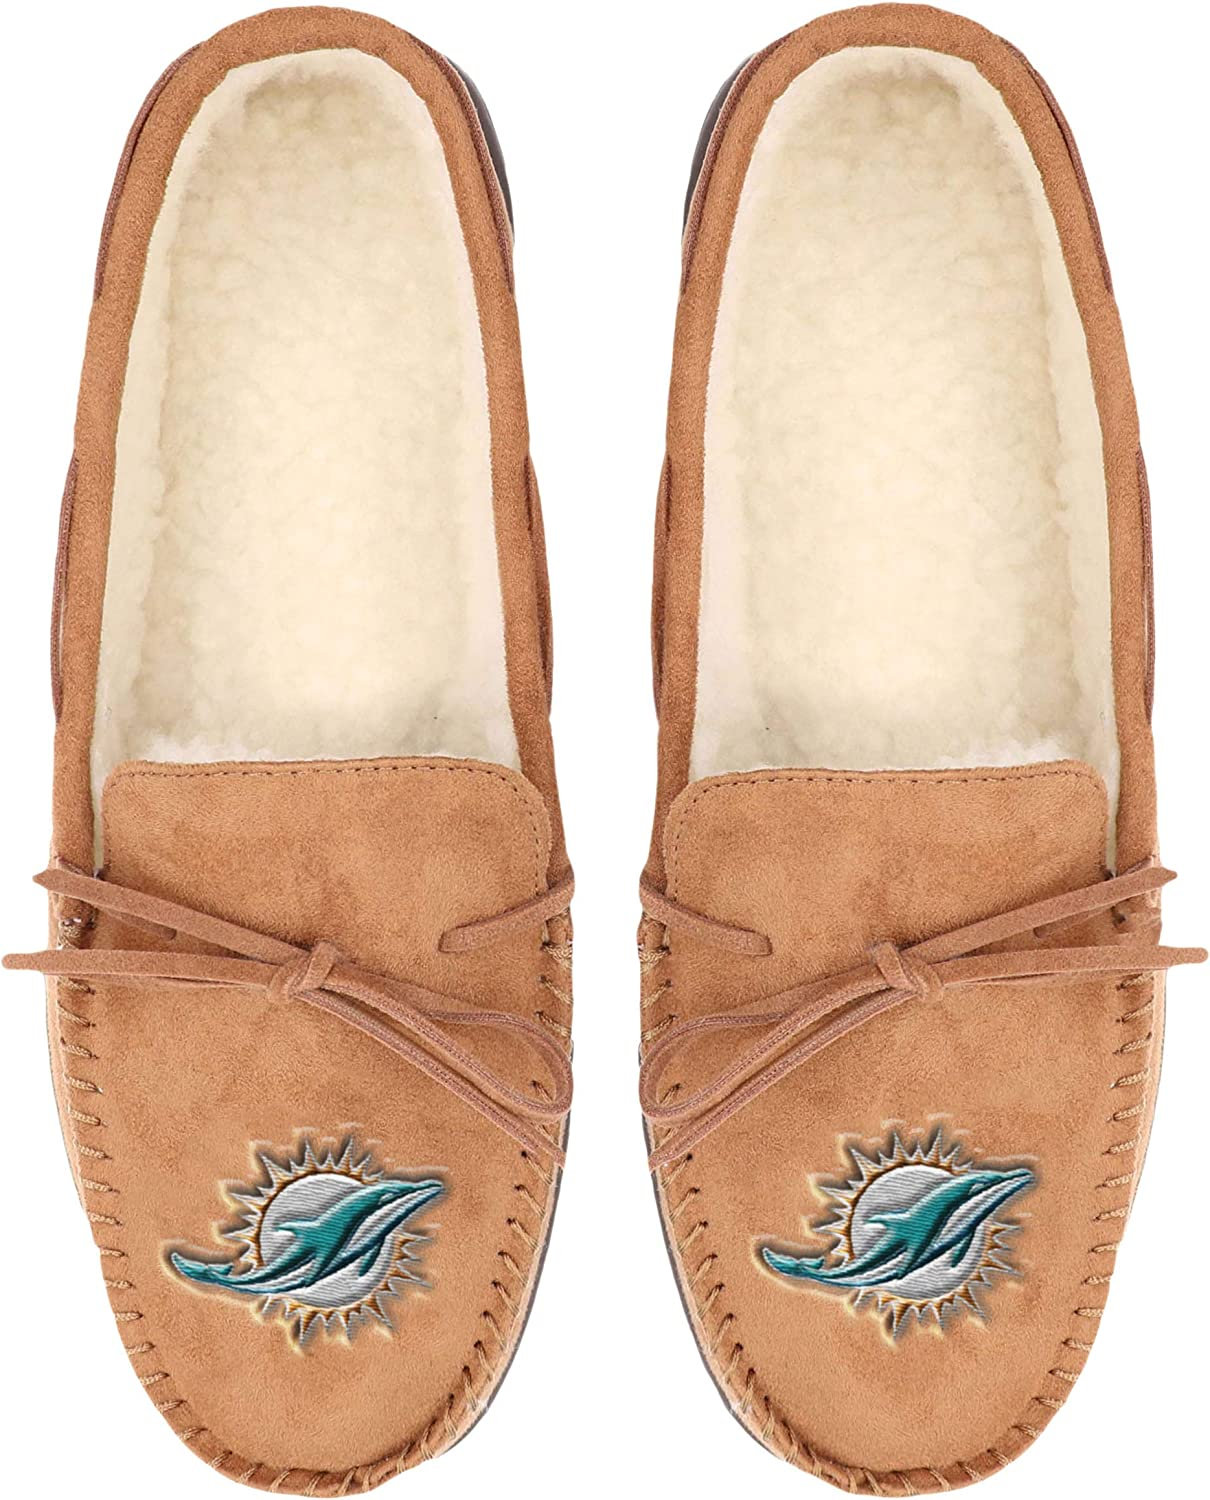 NFL Mens Football Team Logo Moccasin Slippers Shoes